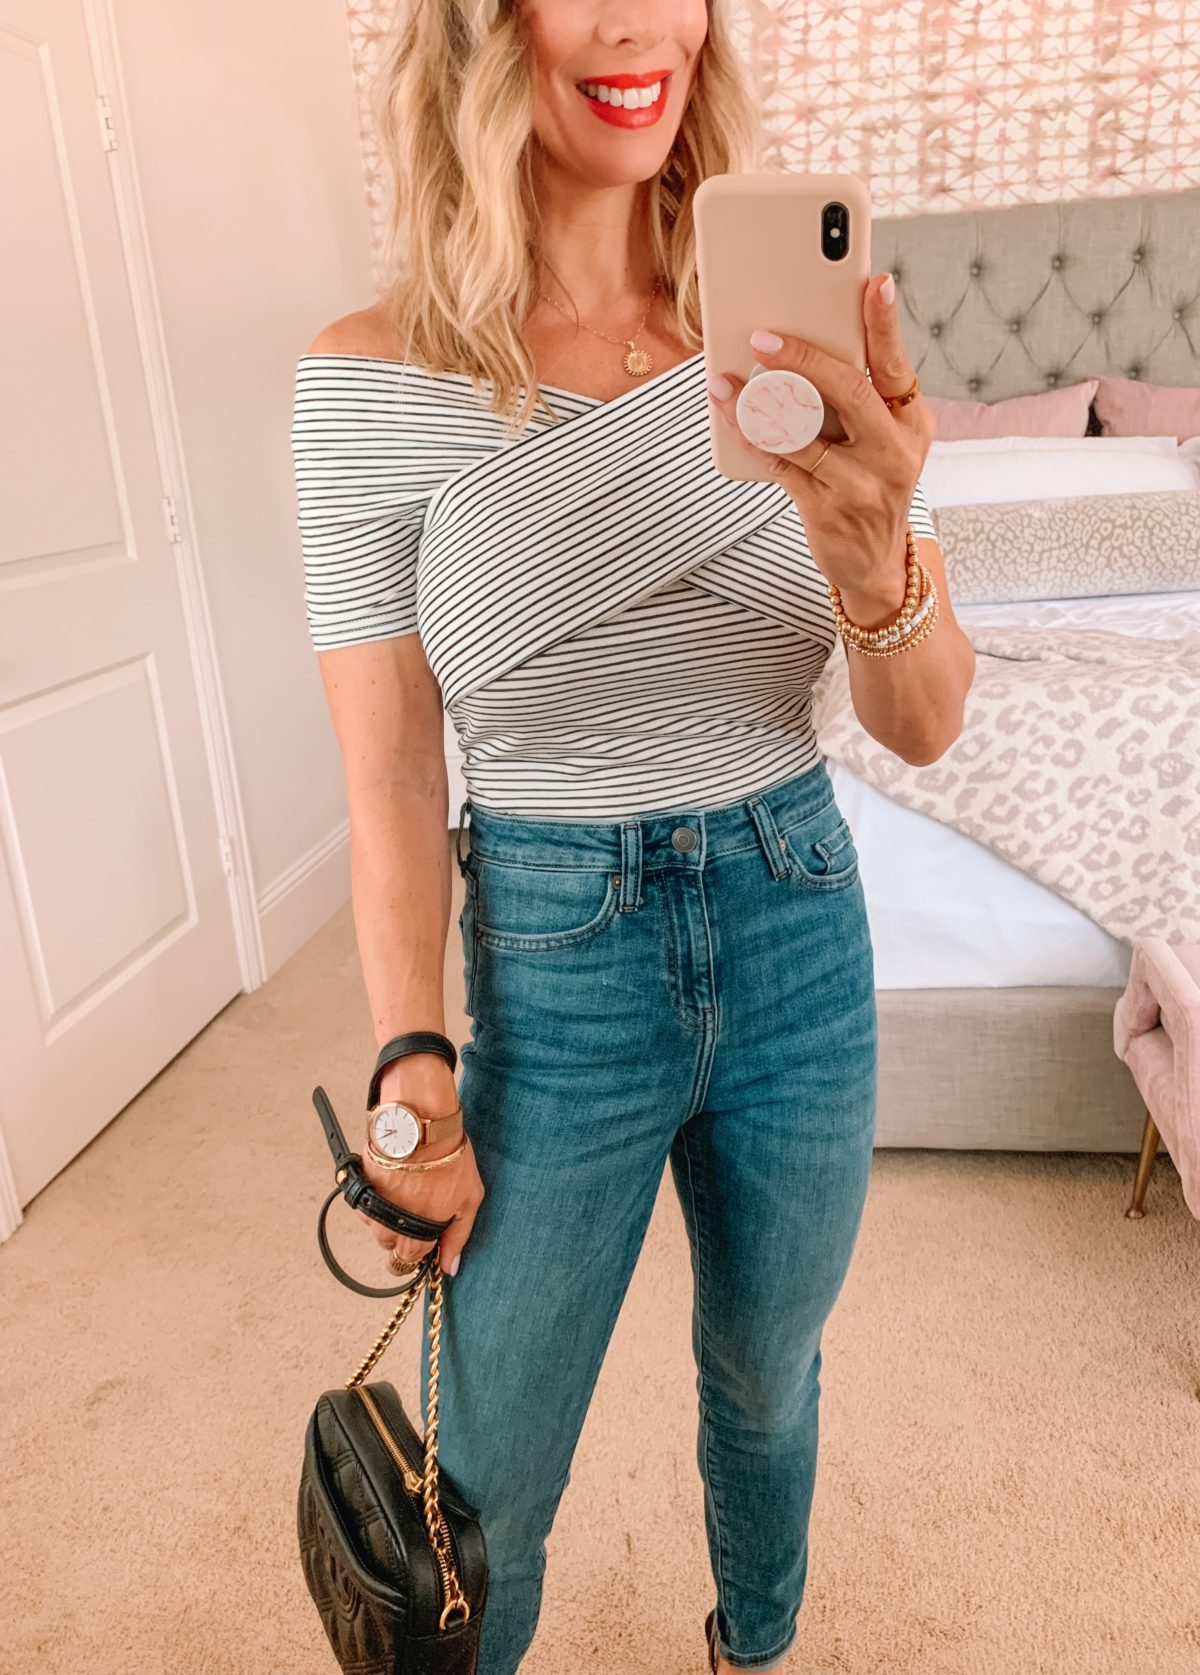 Amazon Fashion Faves, Striped Top, Jeans, Sandals, Crossbody